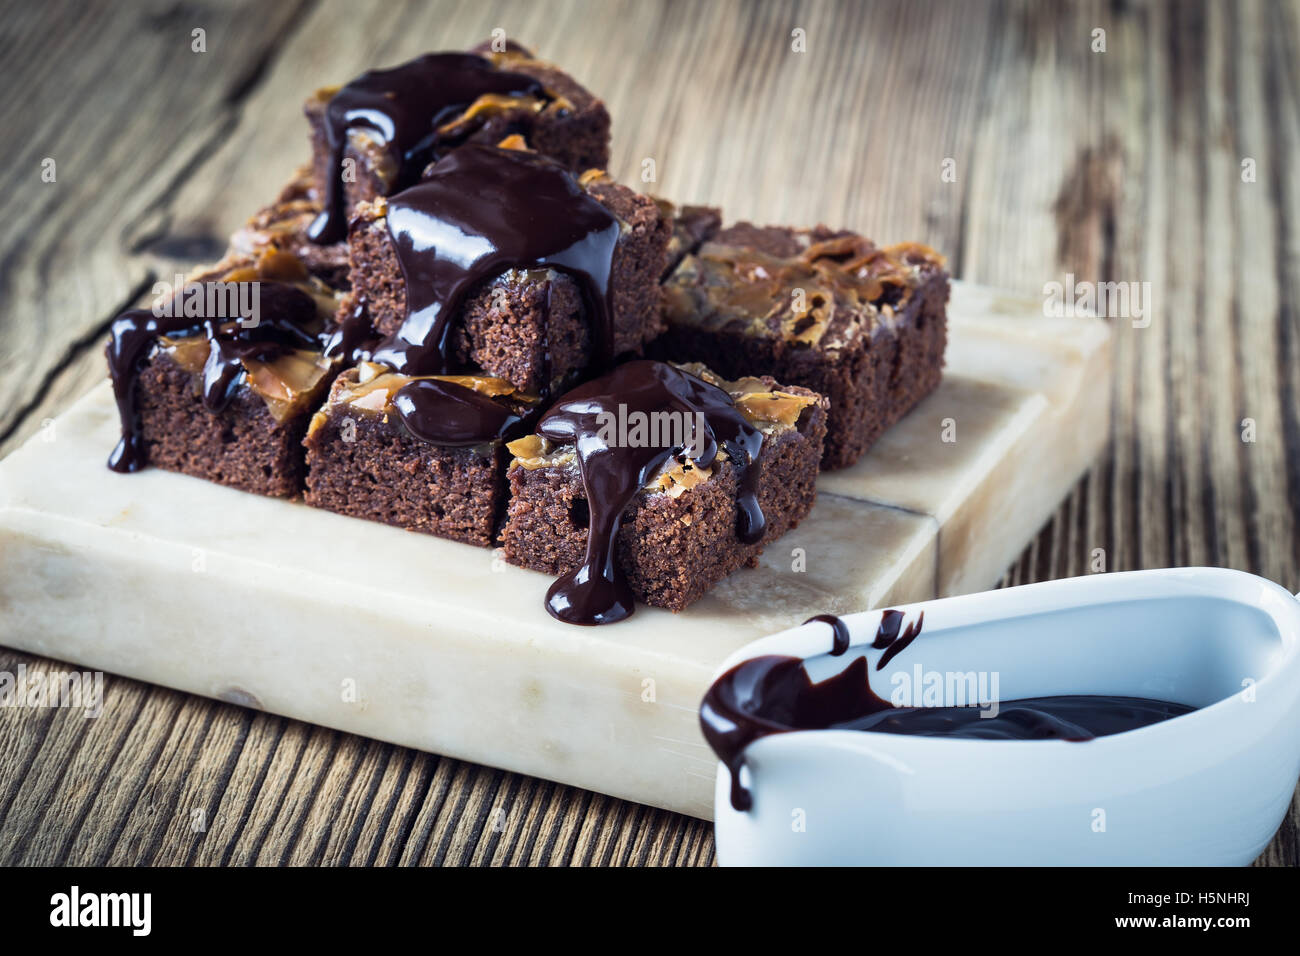 Homemade caramel chocolate brownies with dark chocolate ganache served on marble stand Stock Photo